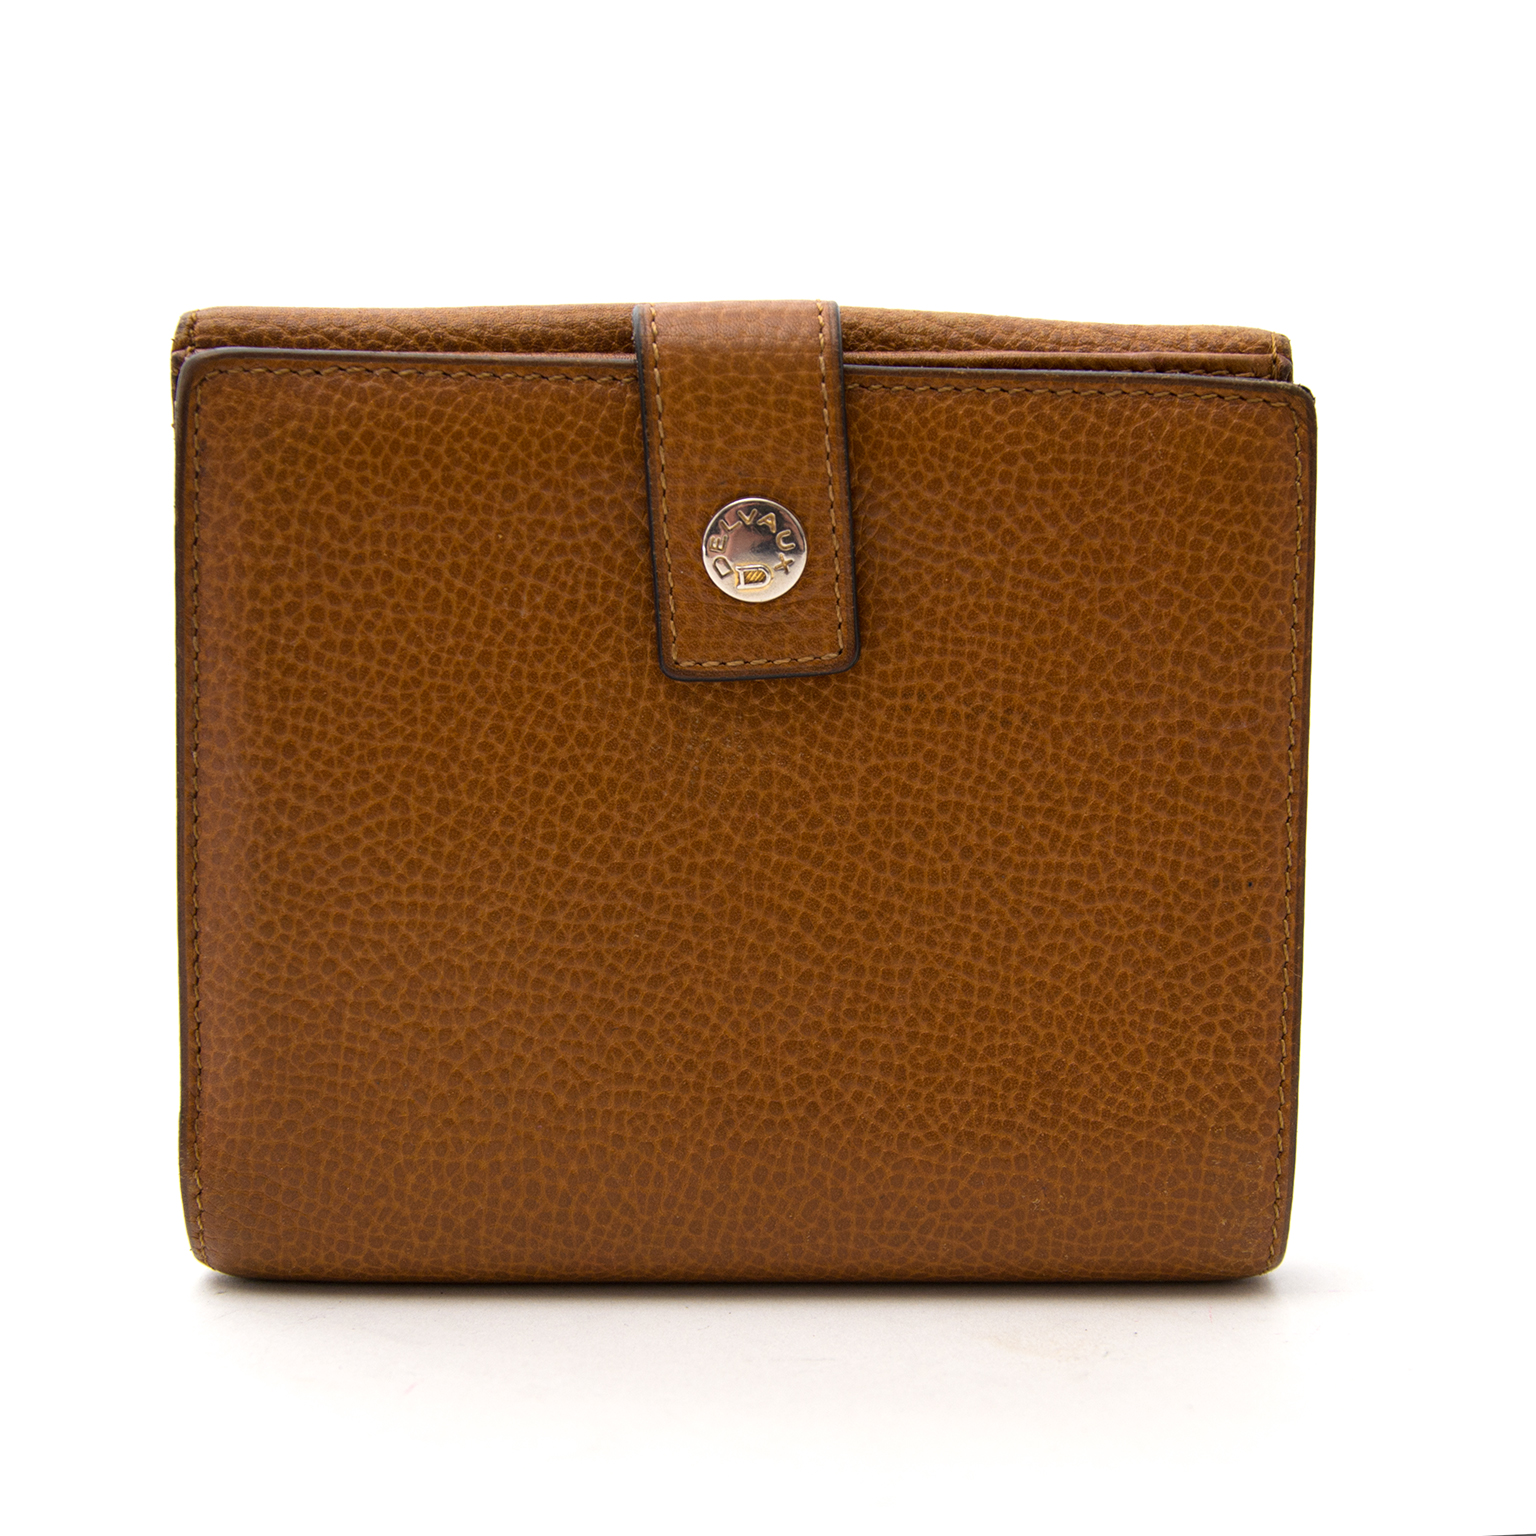 delvaux brown leather wallet now online for the best price at labellov.com